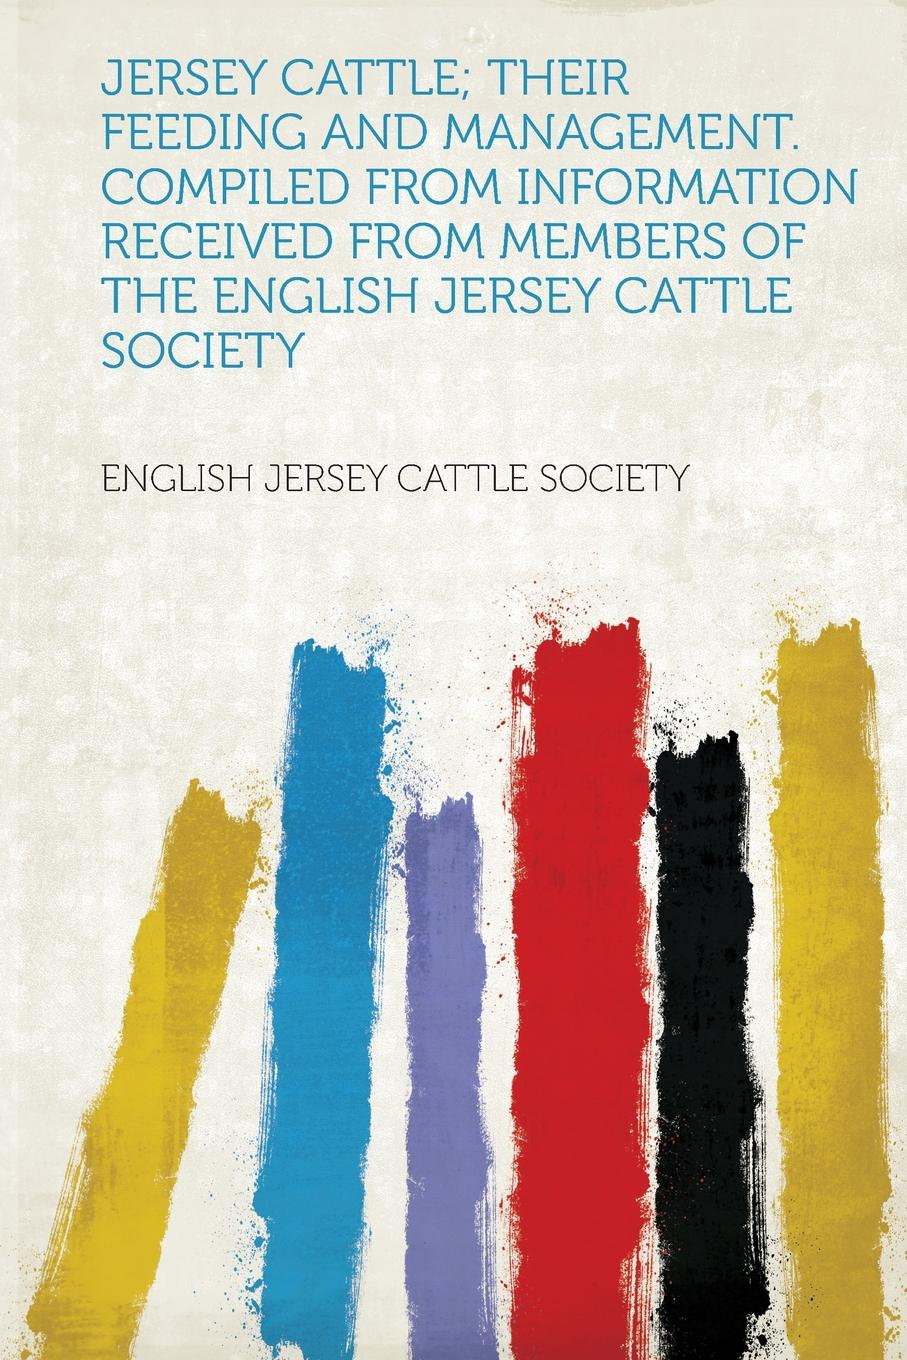 English Jersey Cattle Society Jersey Cattle; Their Feeding and Management. Compiled from Information Received from Members of the English Jersey Cattle Society available from 10 11 dc cycling jersey edyft03274 kvj1